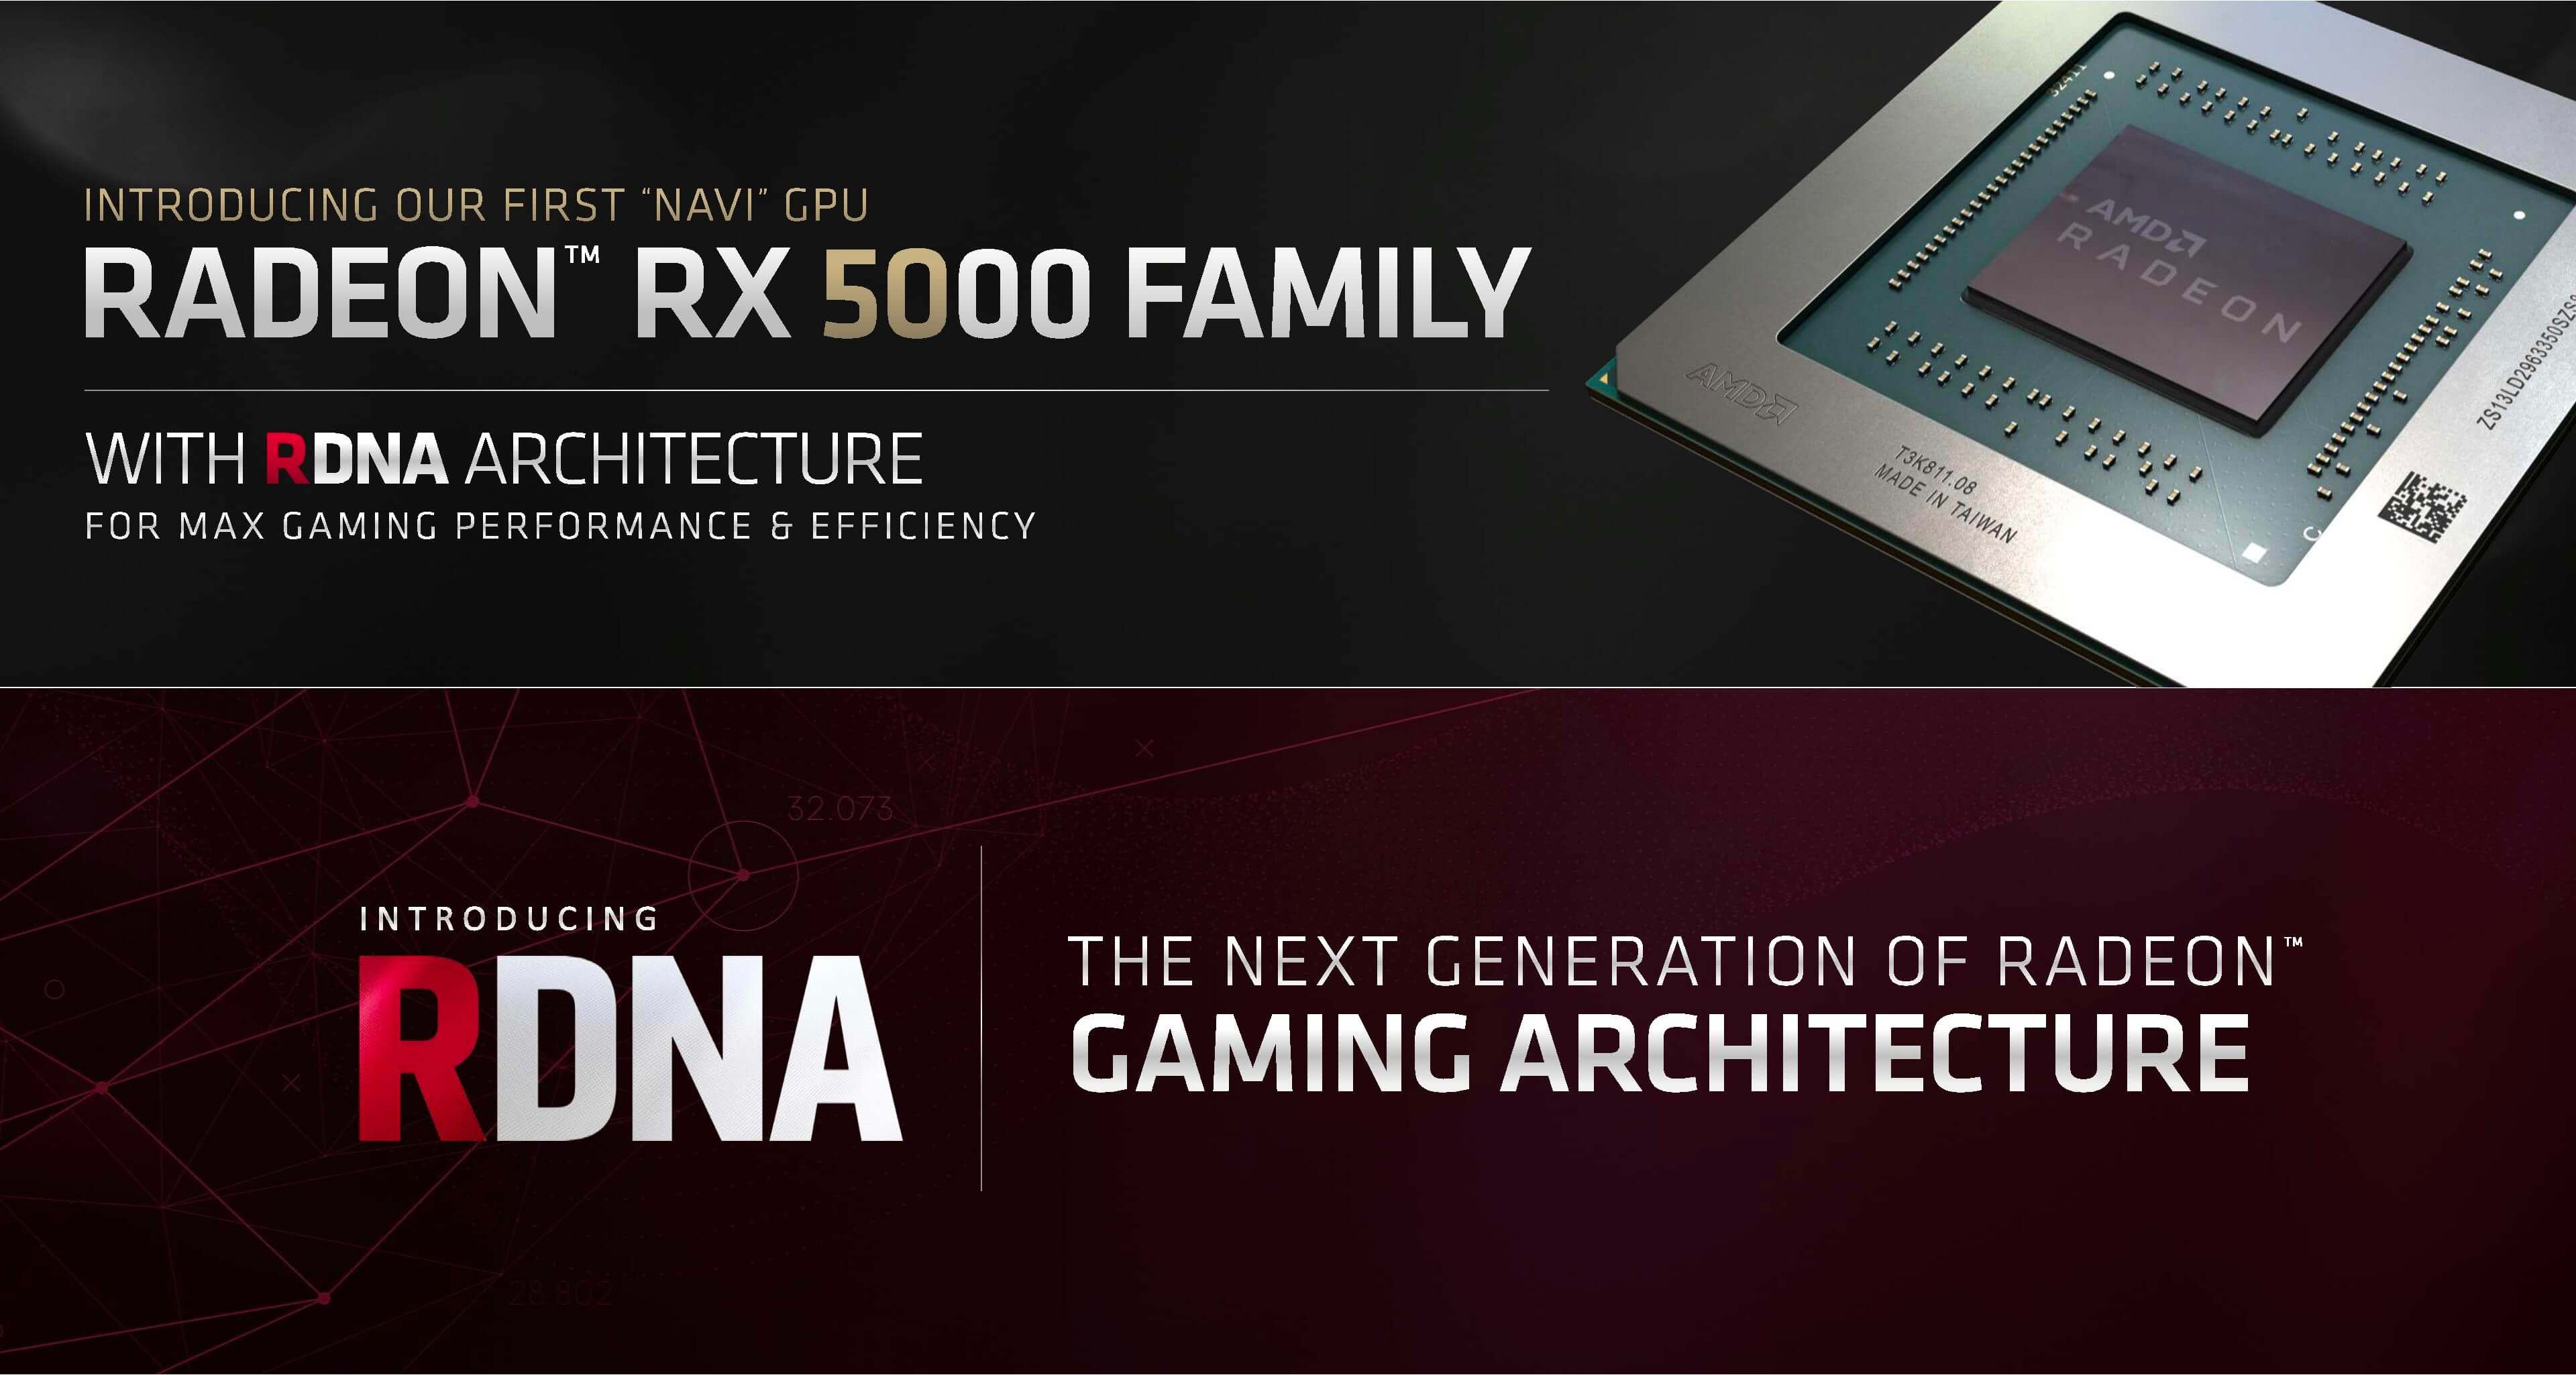 AMD's Navi GPU debuts in July with the Radeon RX 5700 series